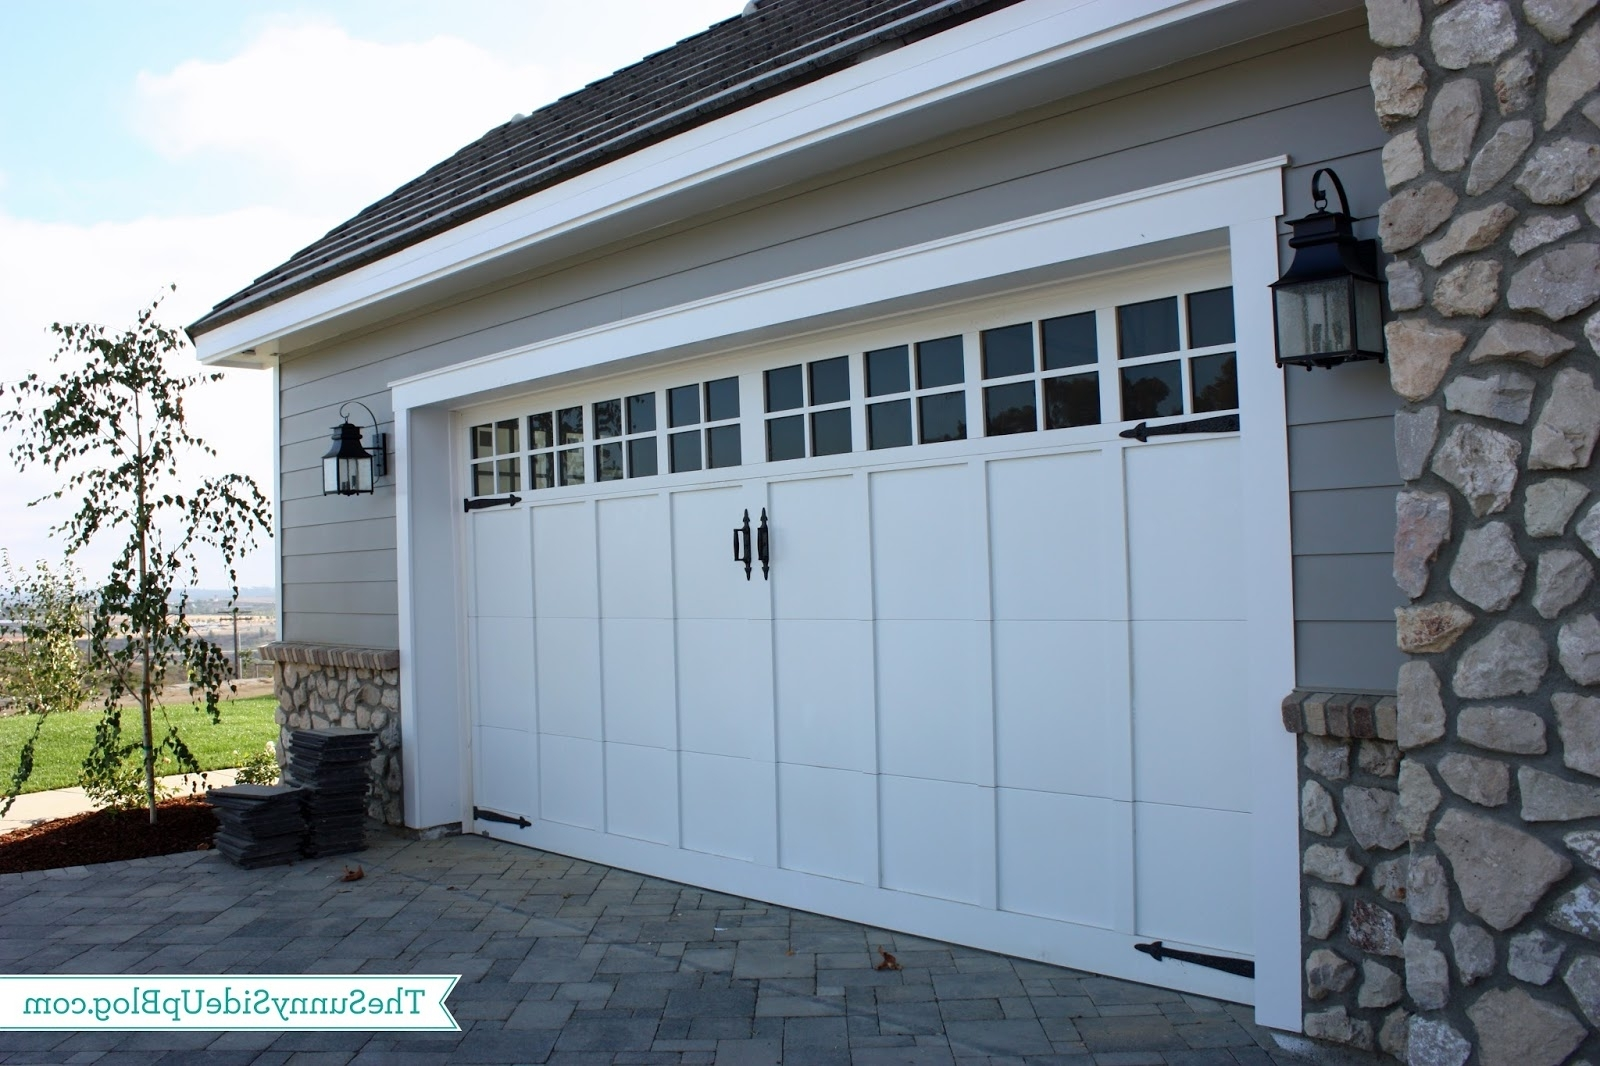 Outdoor Lanterns For Garage In Well Known 42 Garage Door Lanterns, Georgian Garage Door Outdoor Light (View 12 of 20)